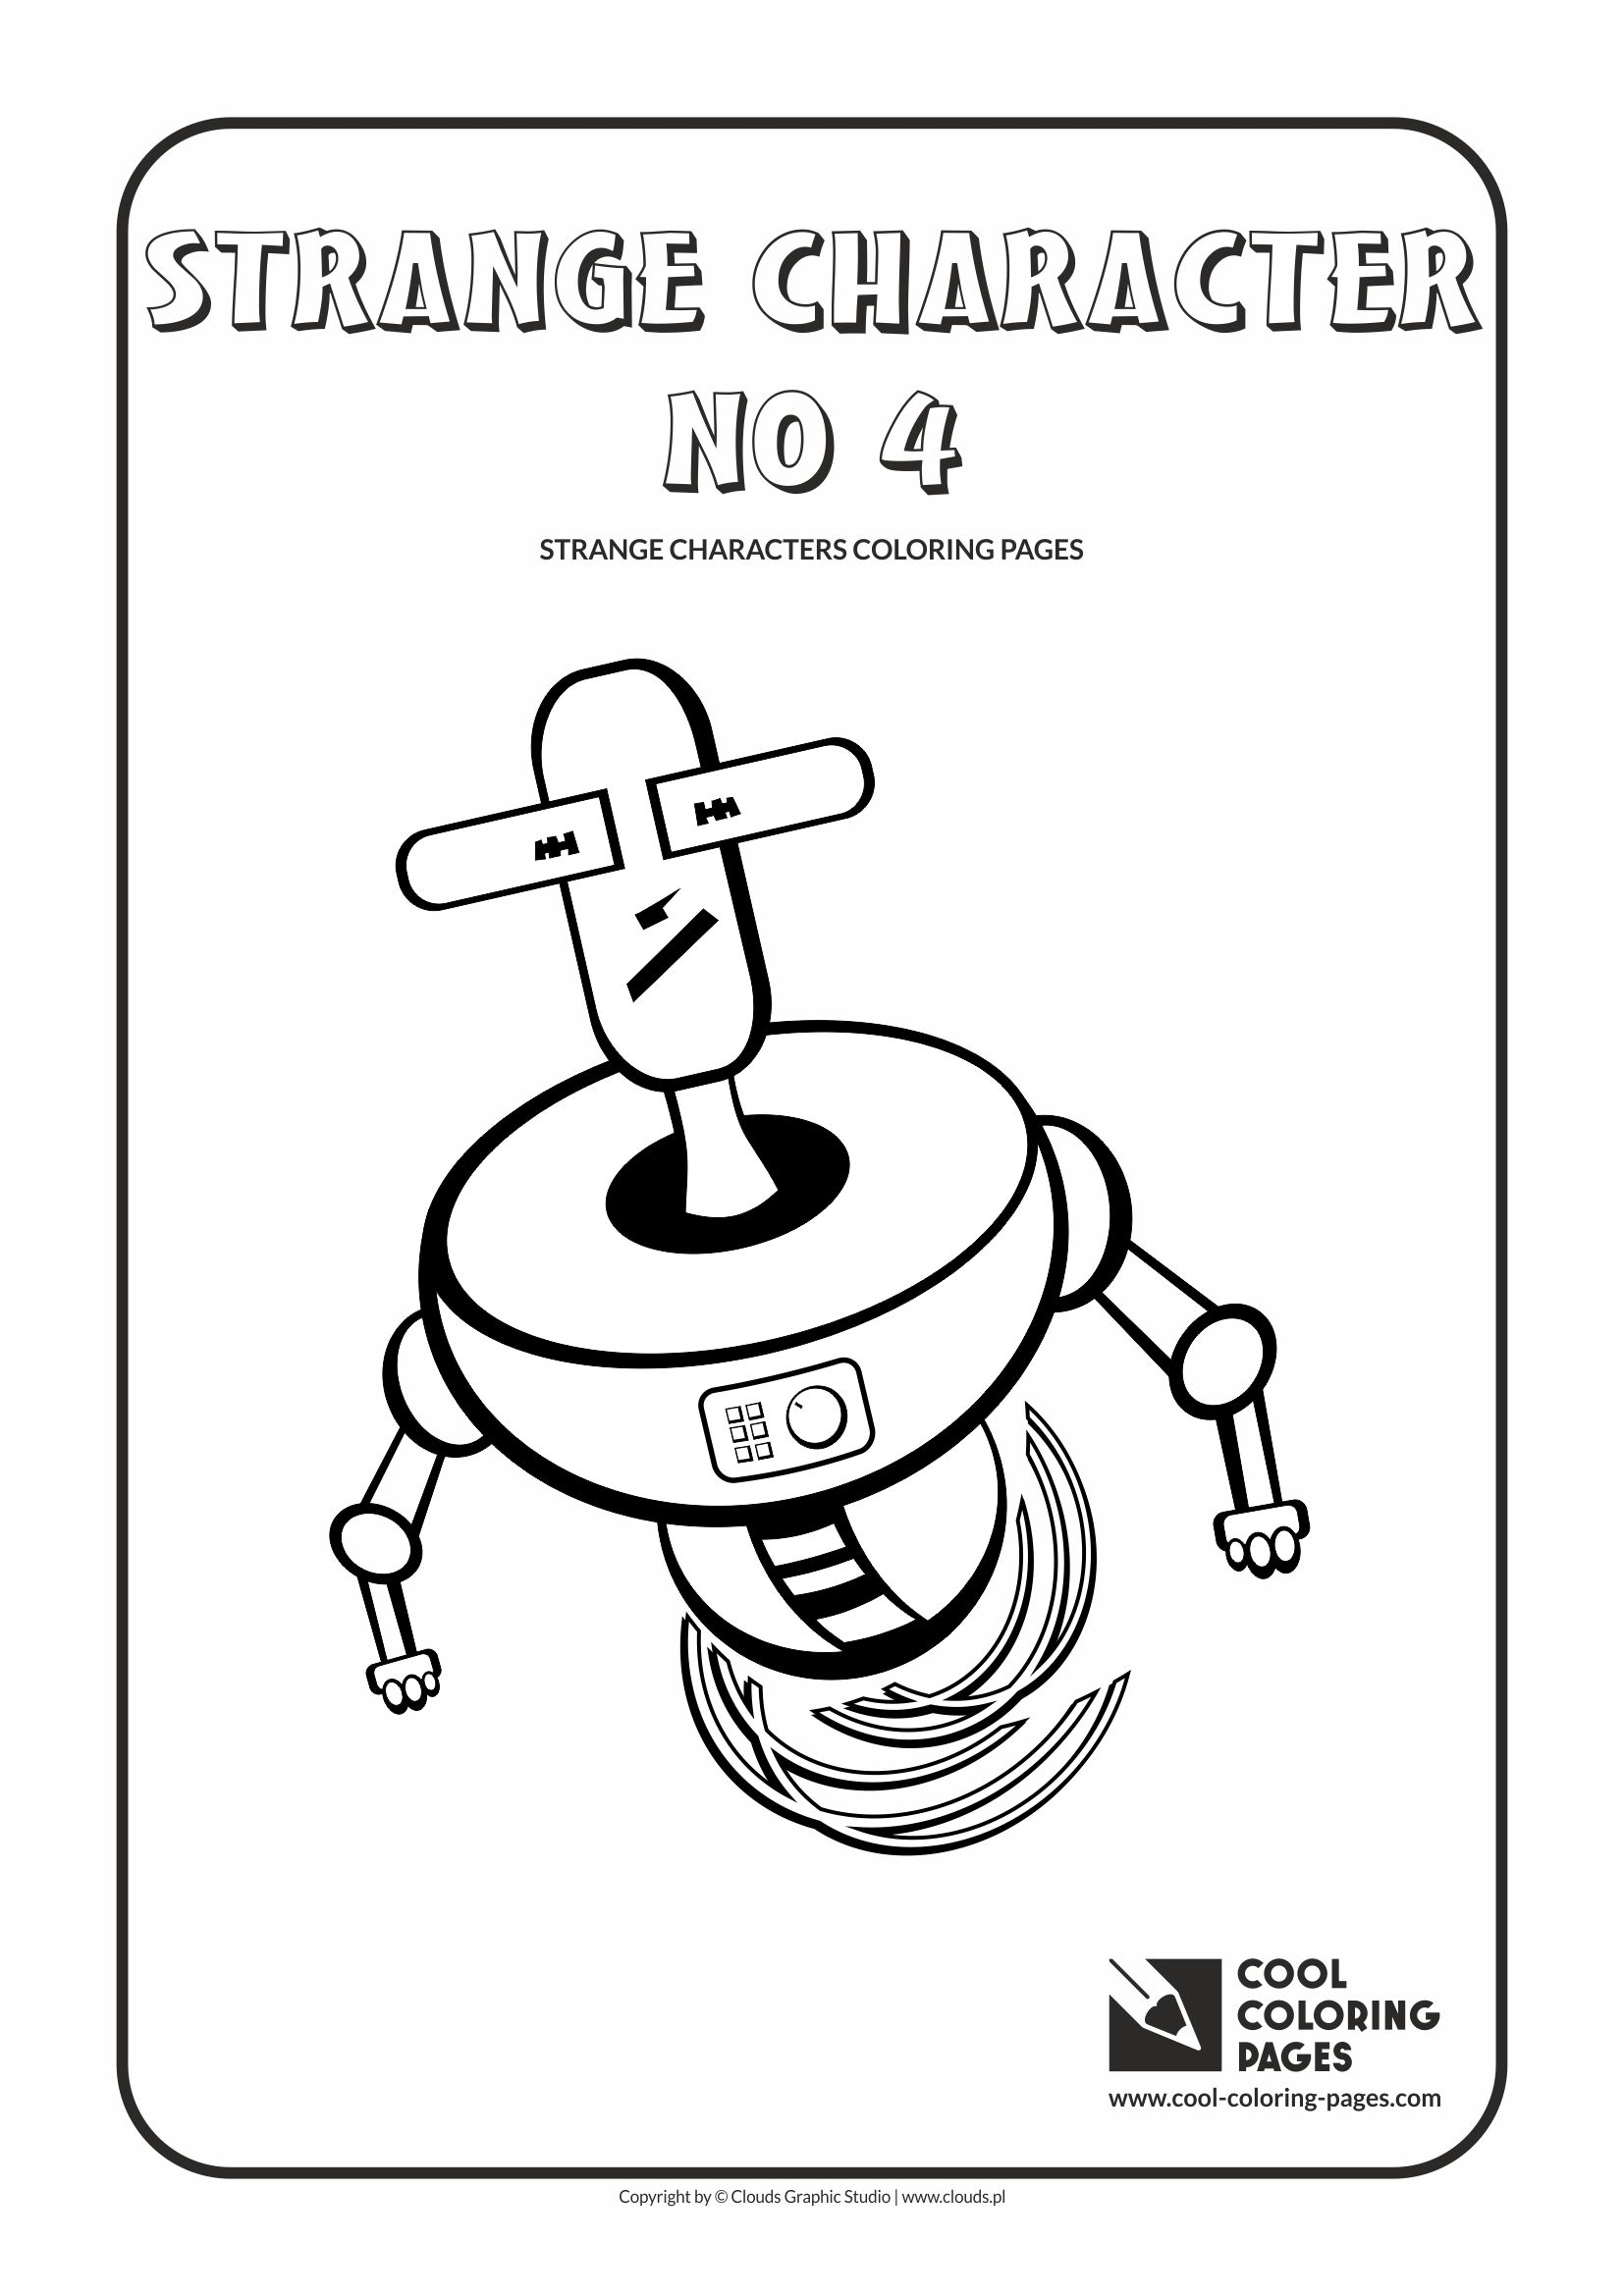 Cool Coloring Pages - Others / Strange character no 4 / Coloring page with strange character no 4